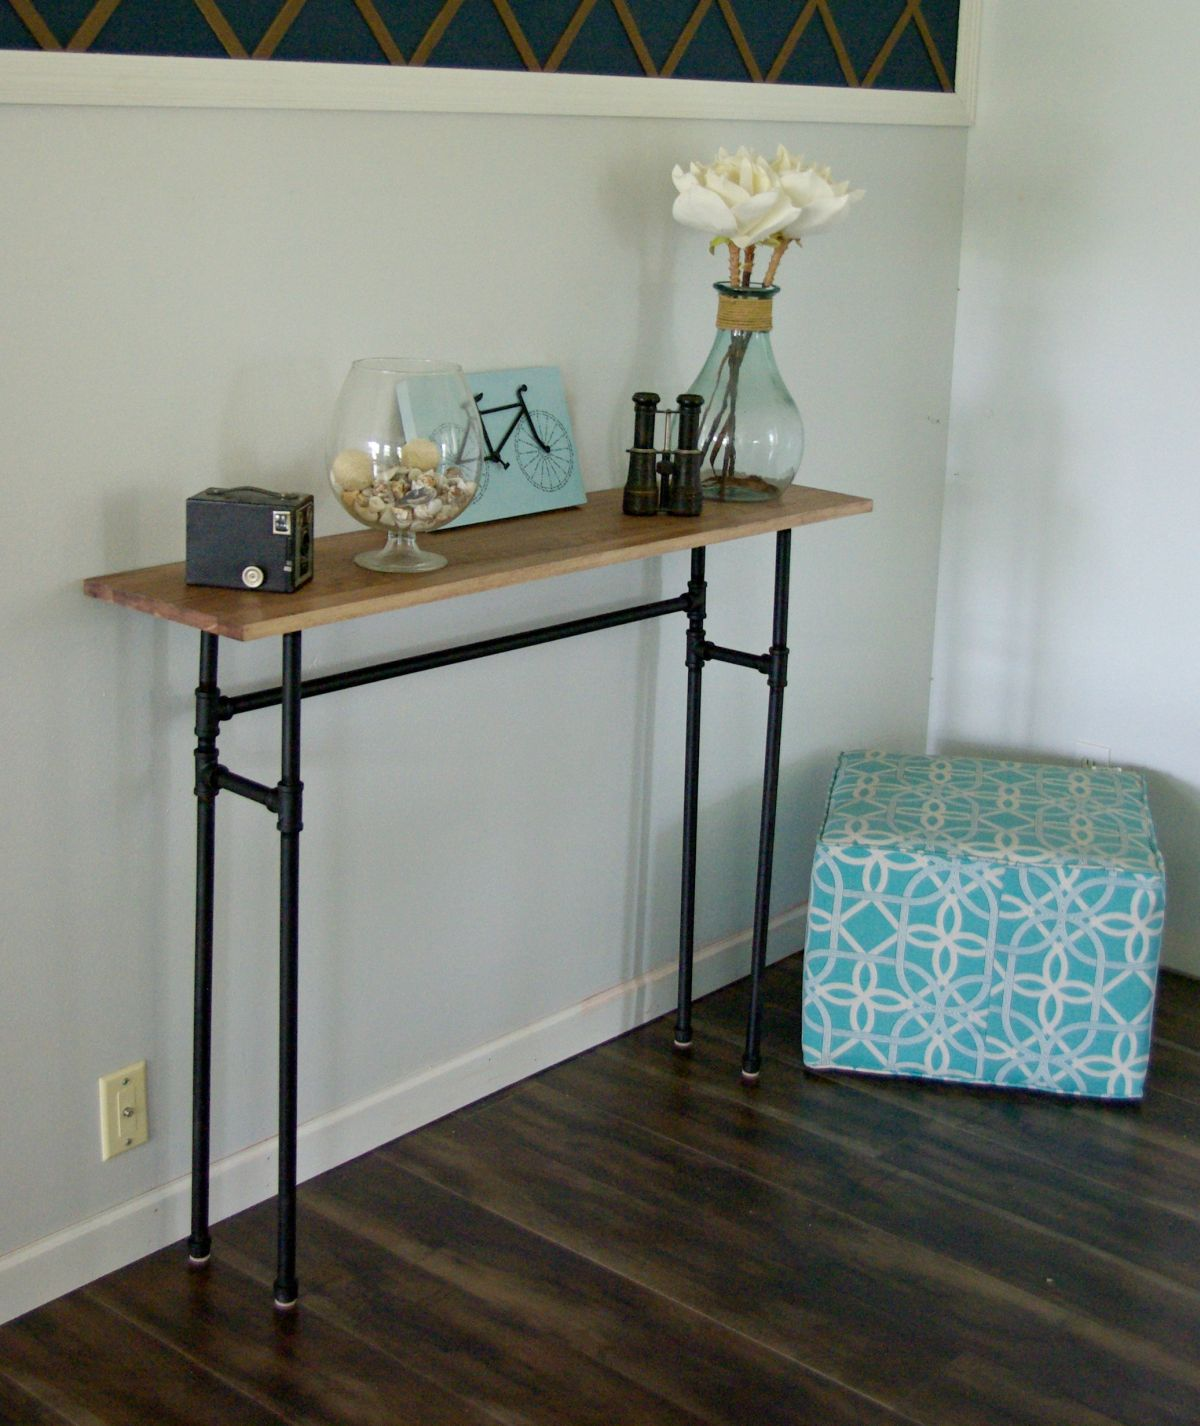 How to make a sofa table out of floor boards - Room And Board Console Table How To Build A Rustic Table Using Galvanized Pipes